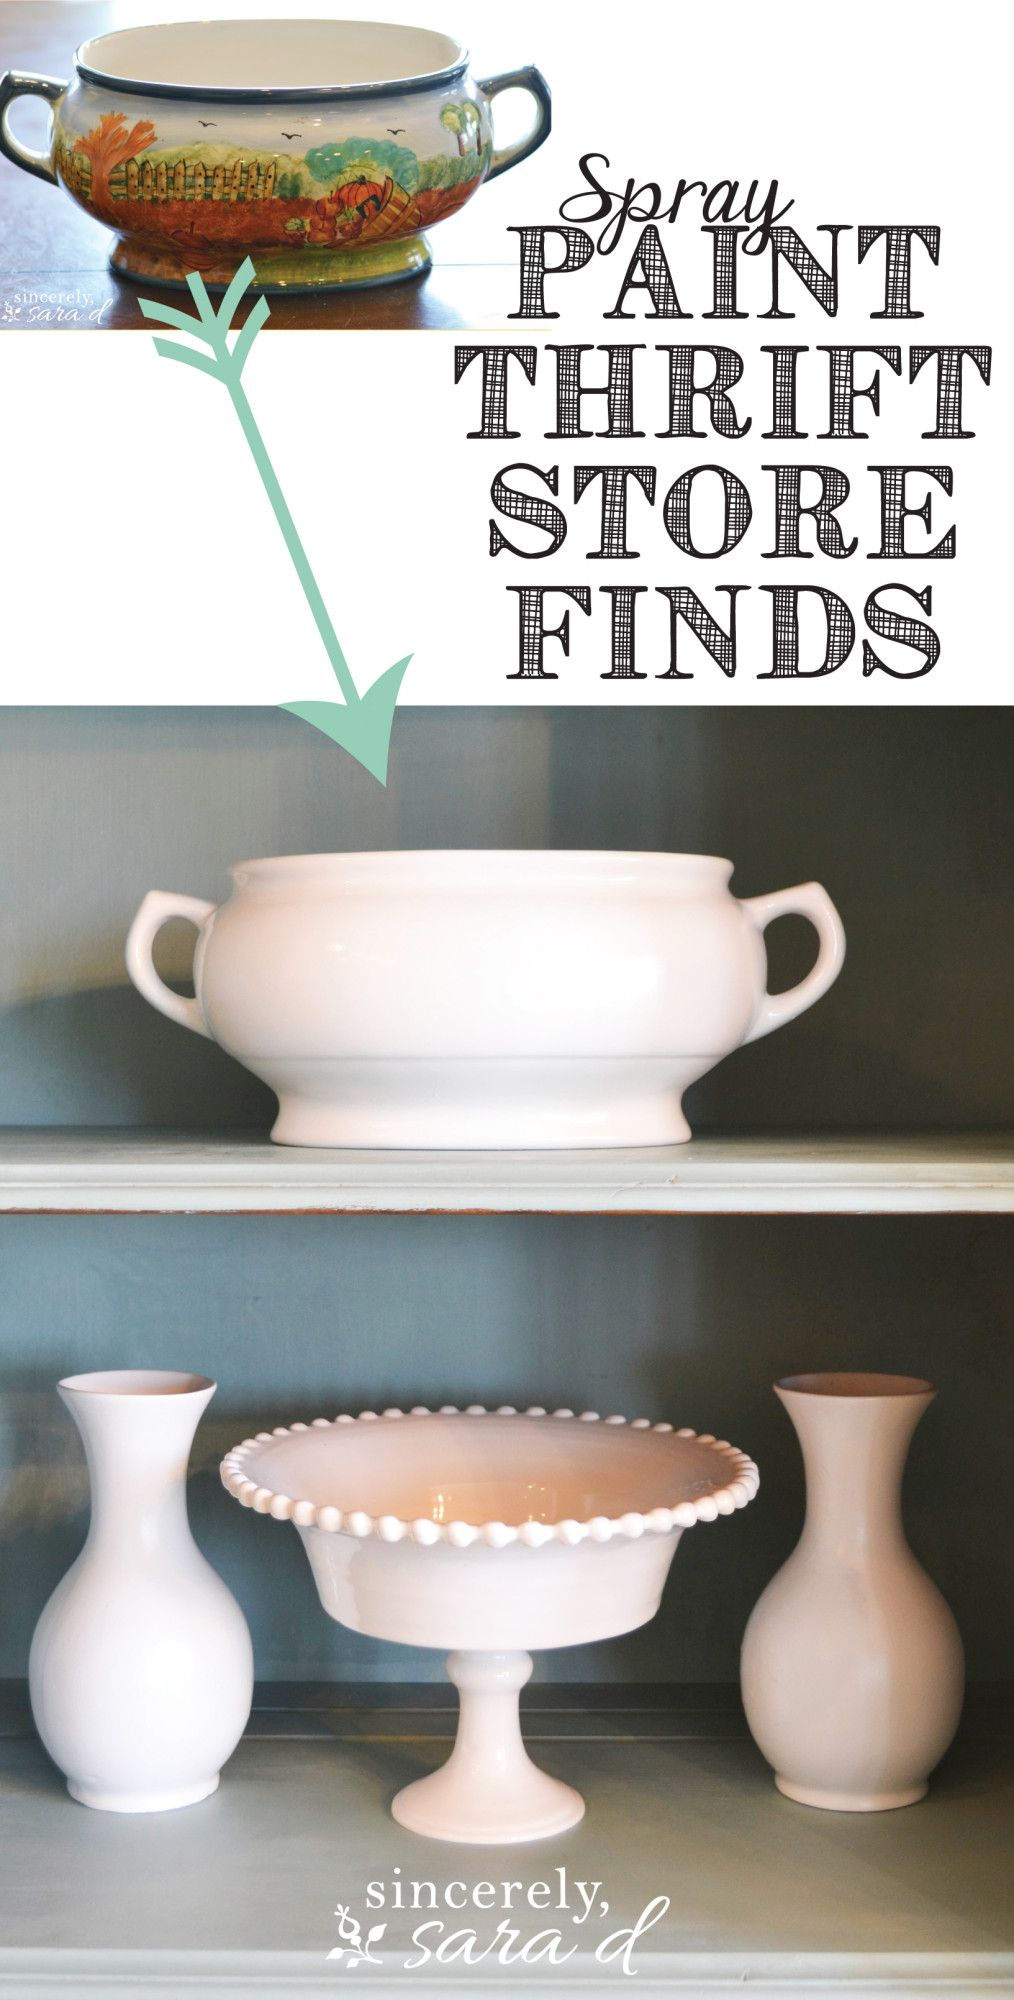 Info's : Update outdated dishes - I'm going to look for inexpensive dishes at garage sales!